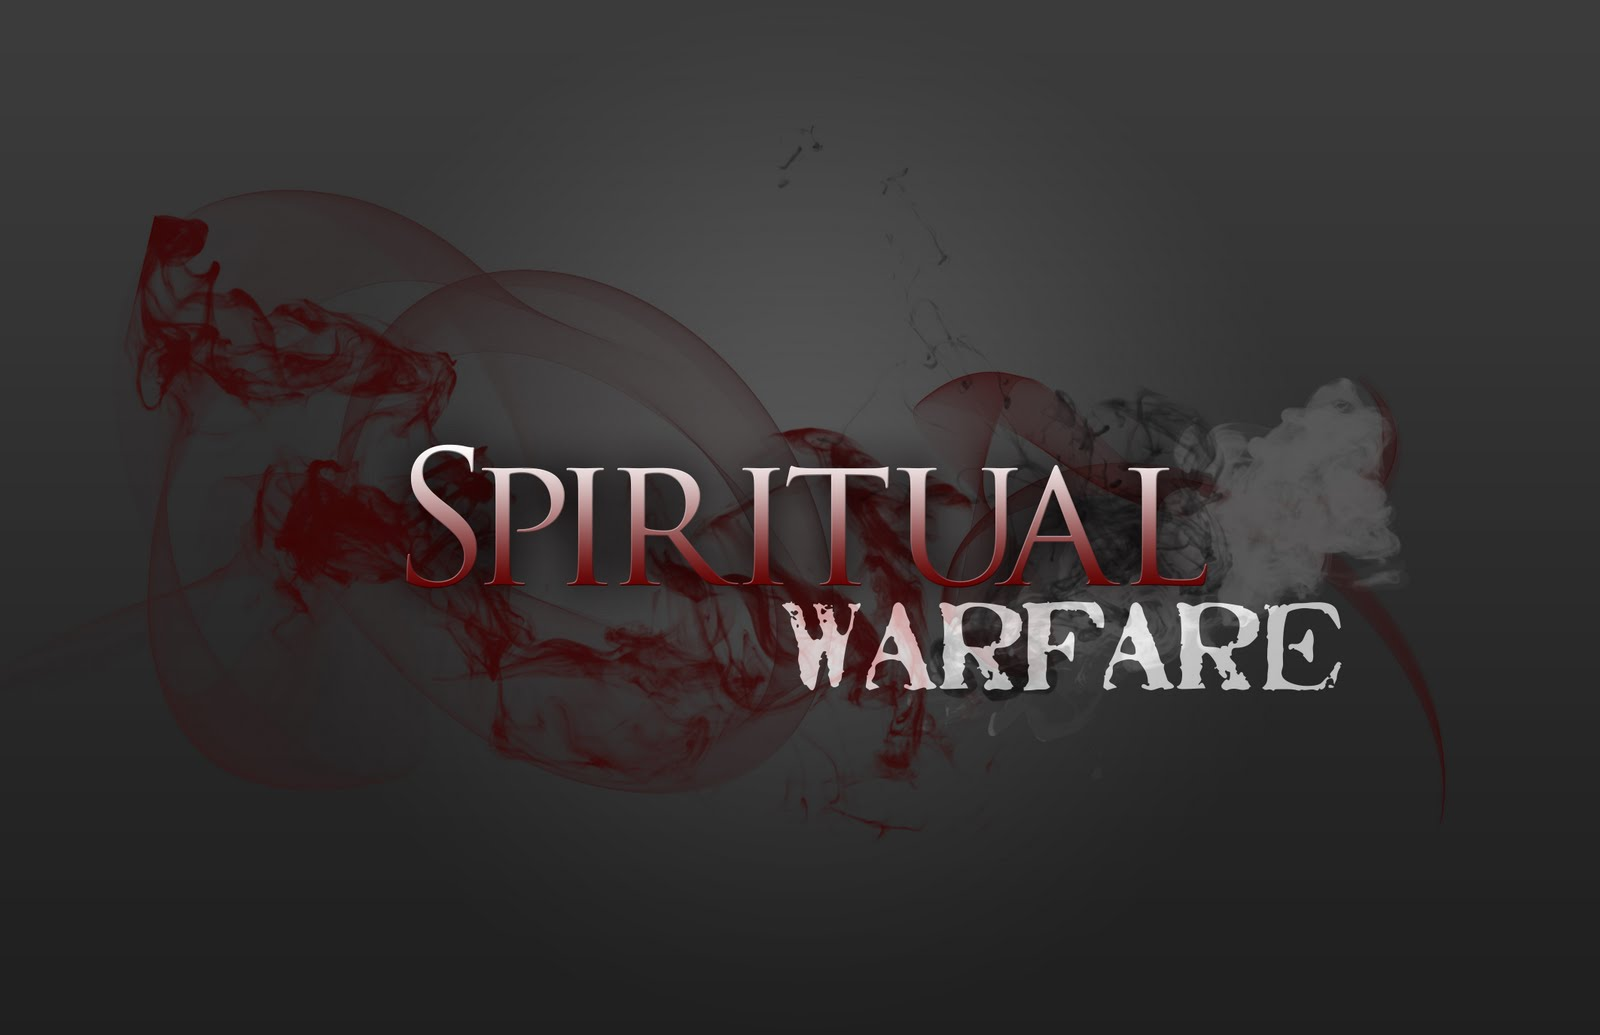 Photos Of Biblical Explanations Pt  2: SPIRITUAL WARFARE